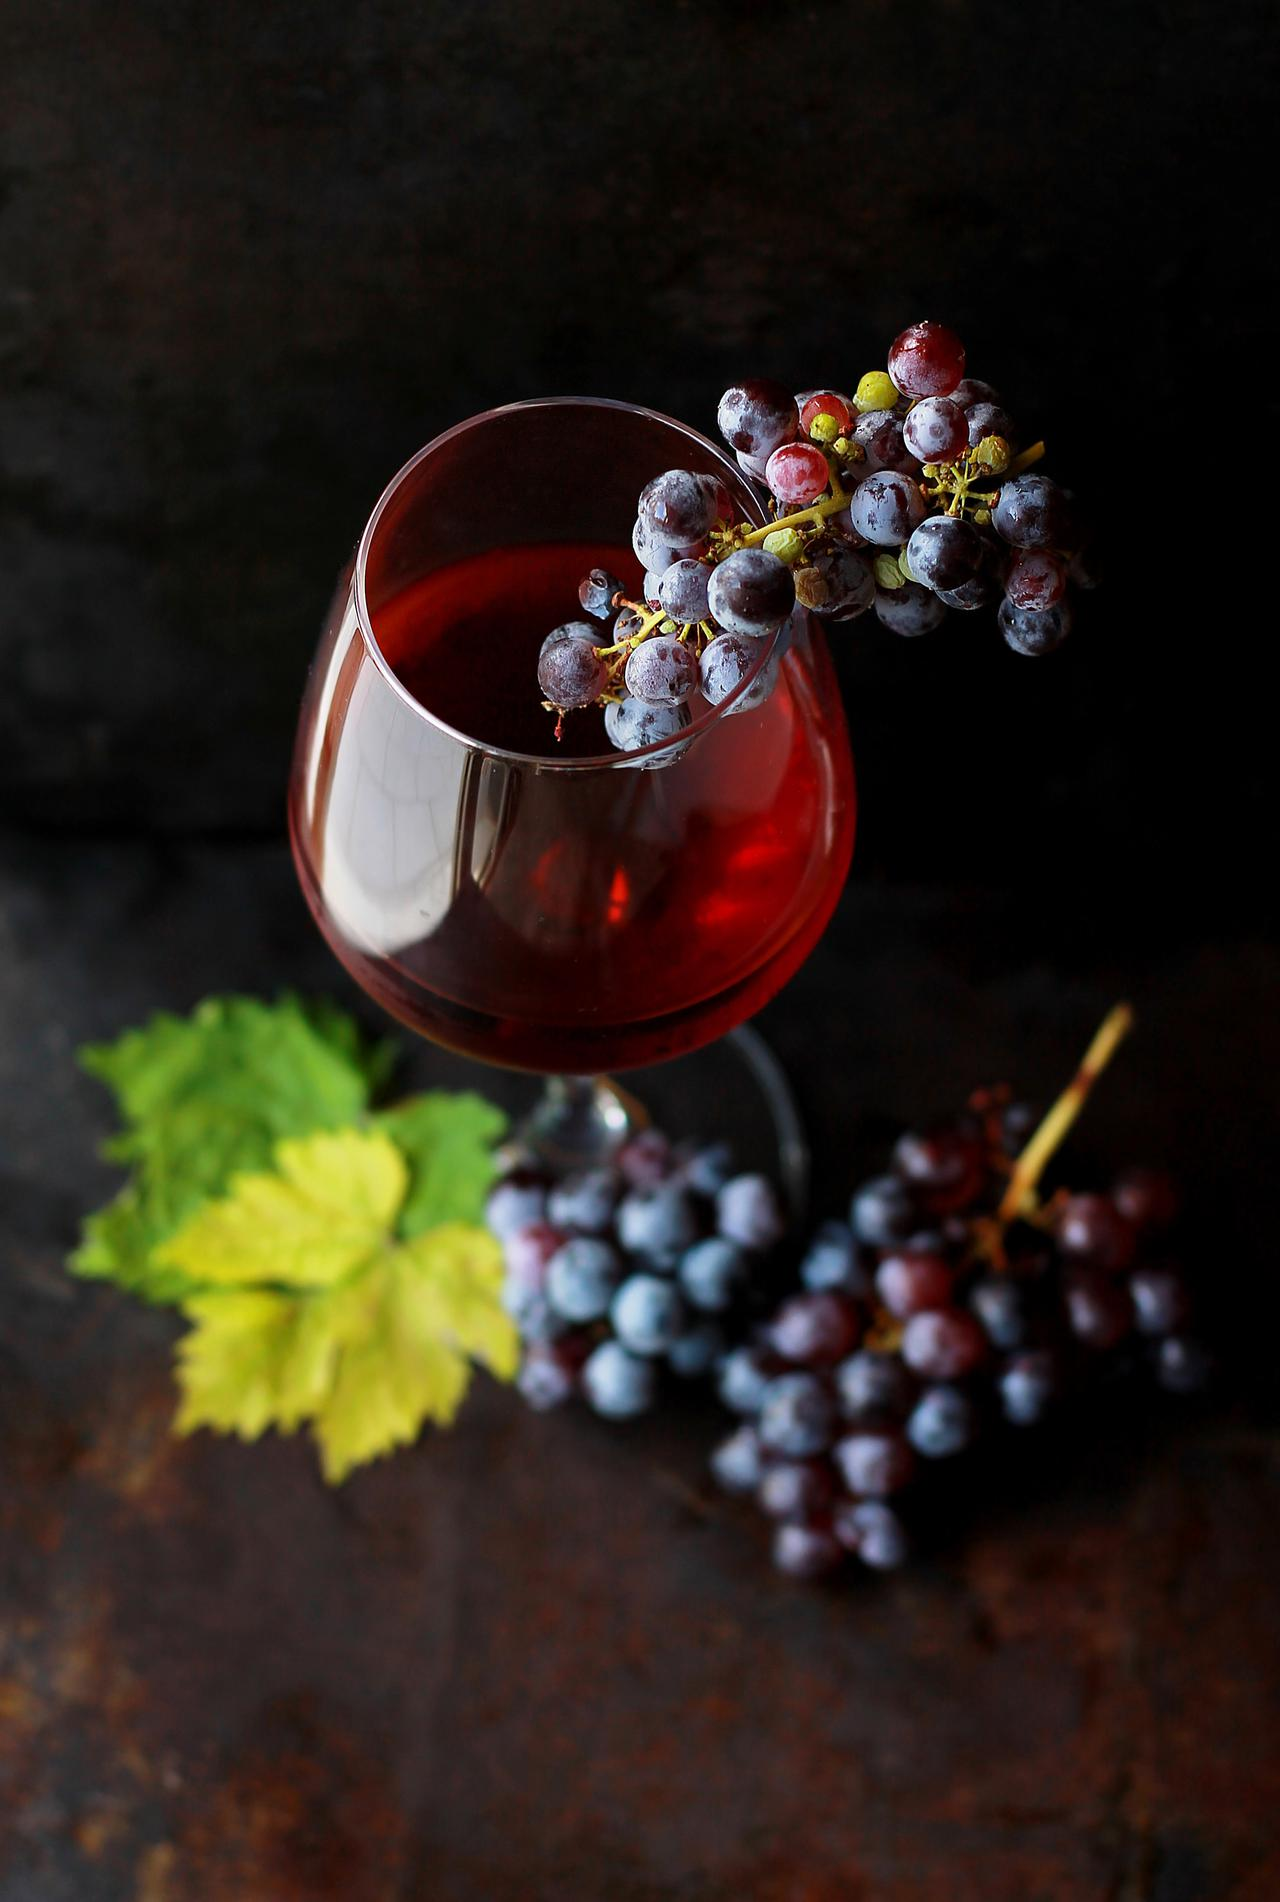 Wine and grapes from above